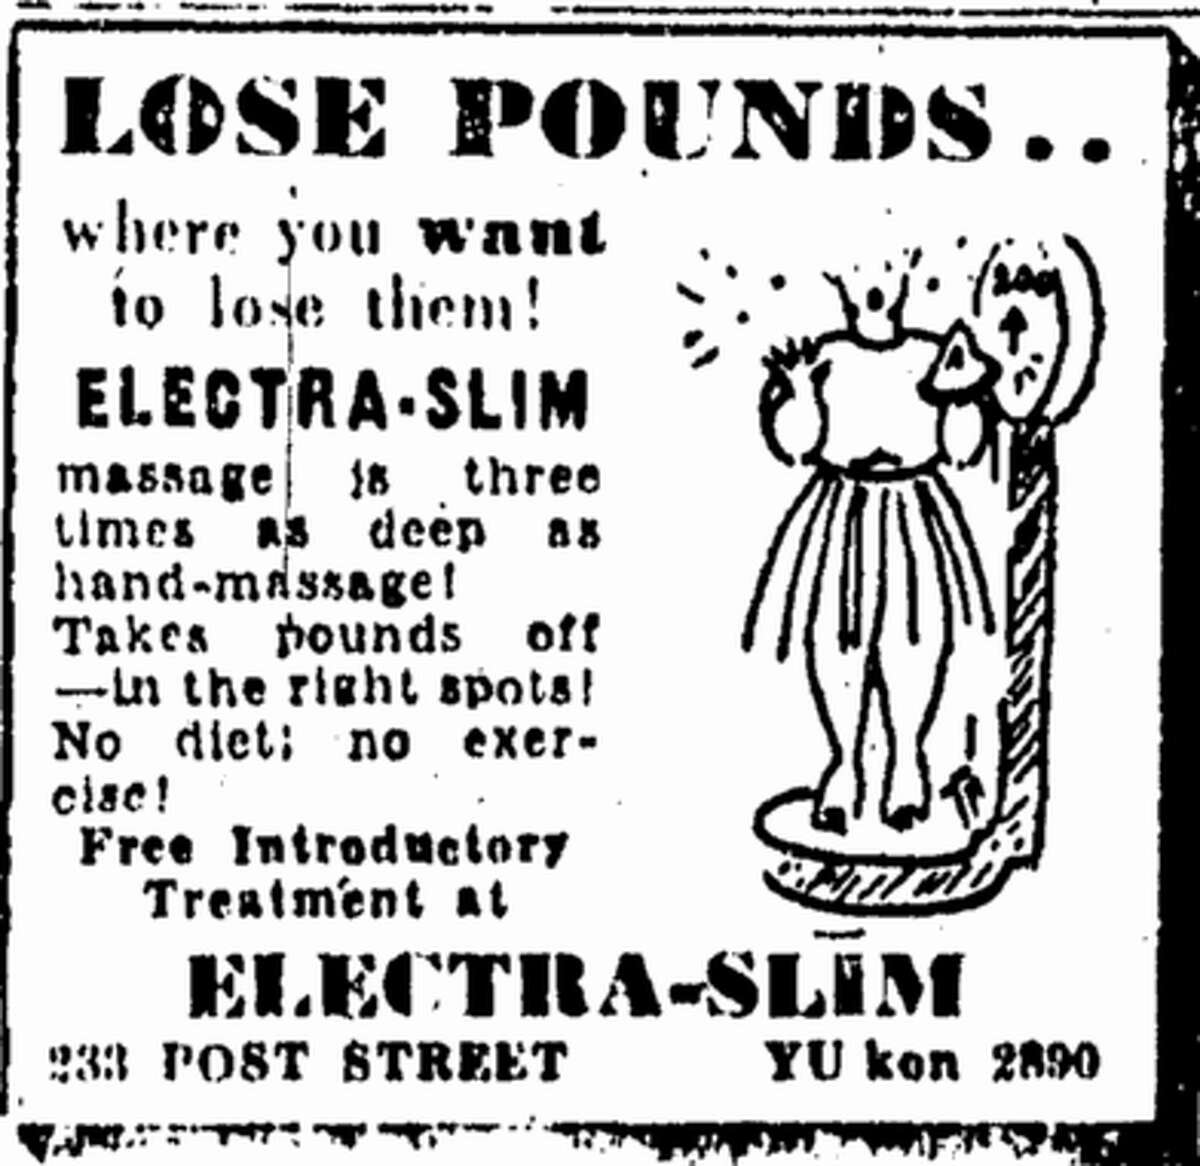 Electra-Slim: Those who wanted to lose weight in 1945 had the option to do so with Electra-Slim massages, which were,